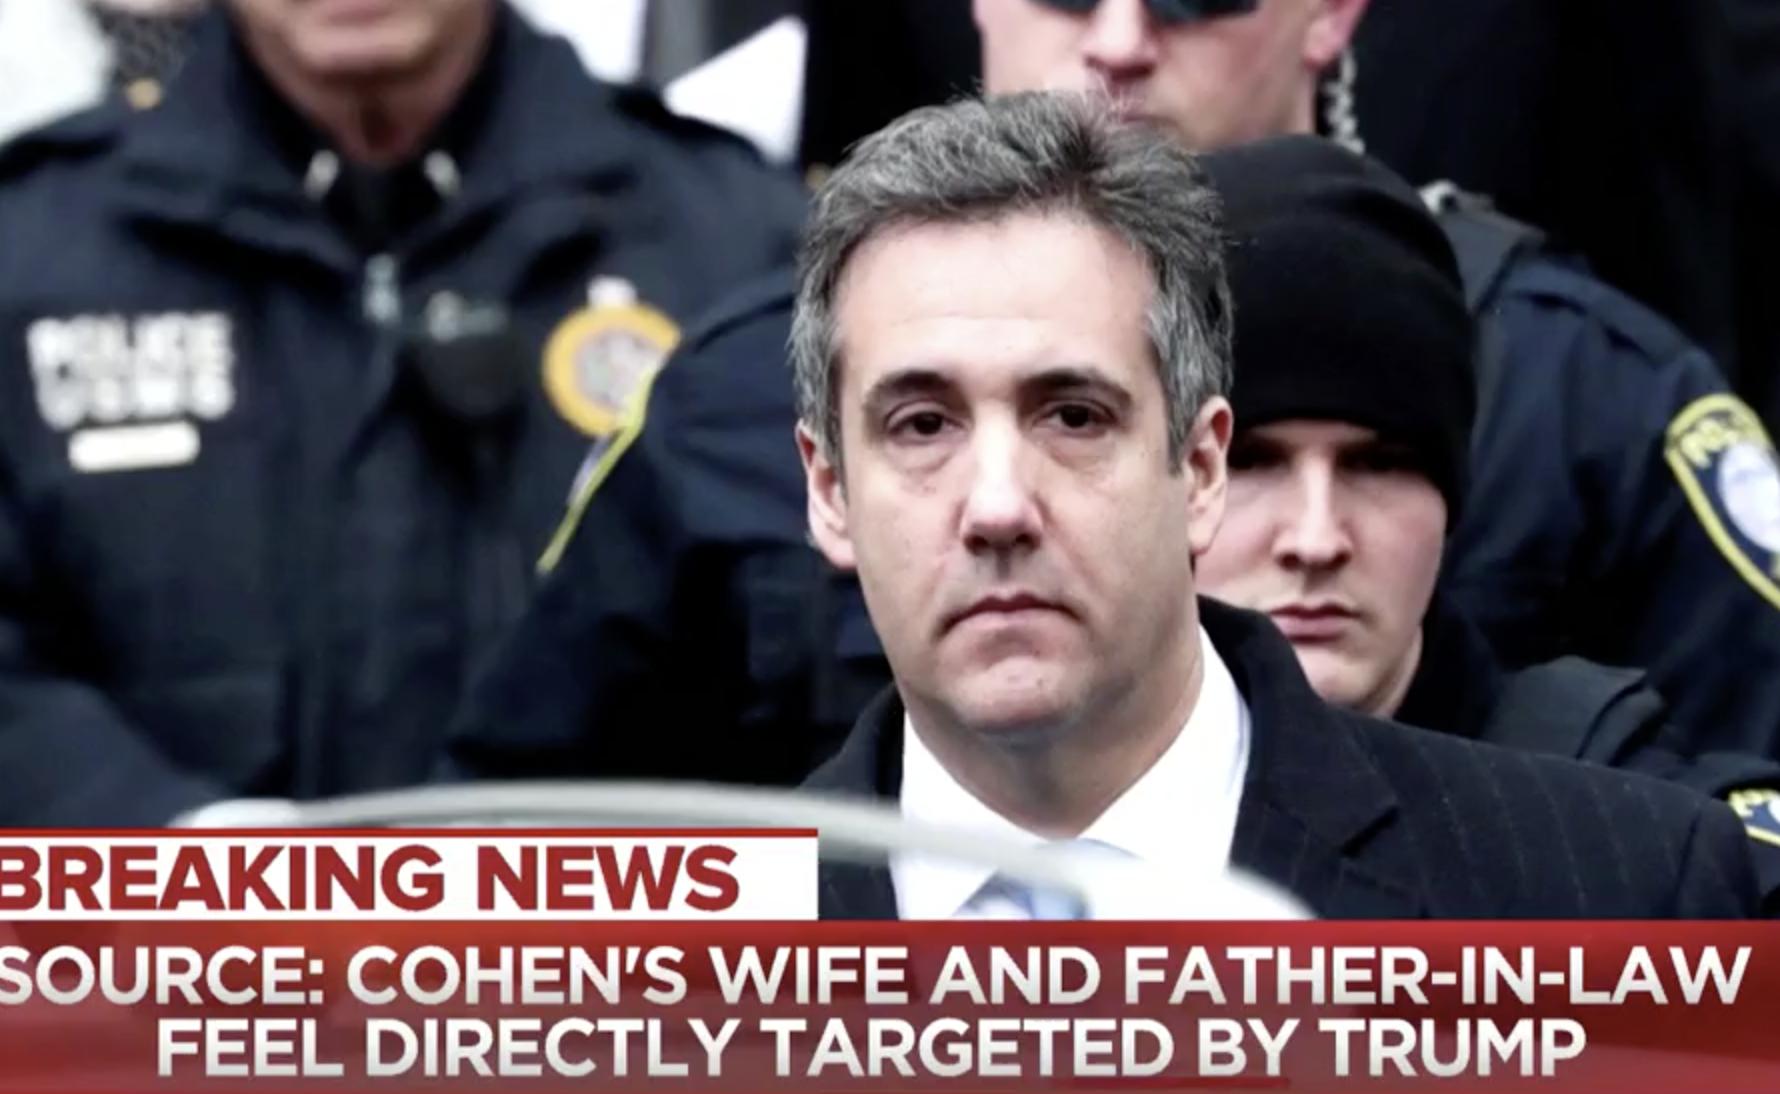 Michael Cohen Cancels Congressional Testimony After Threats From